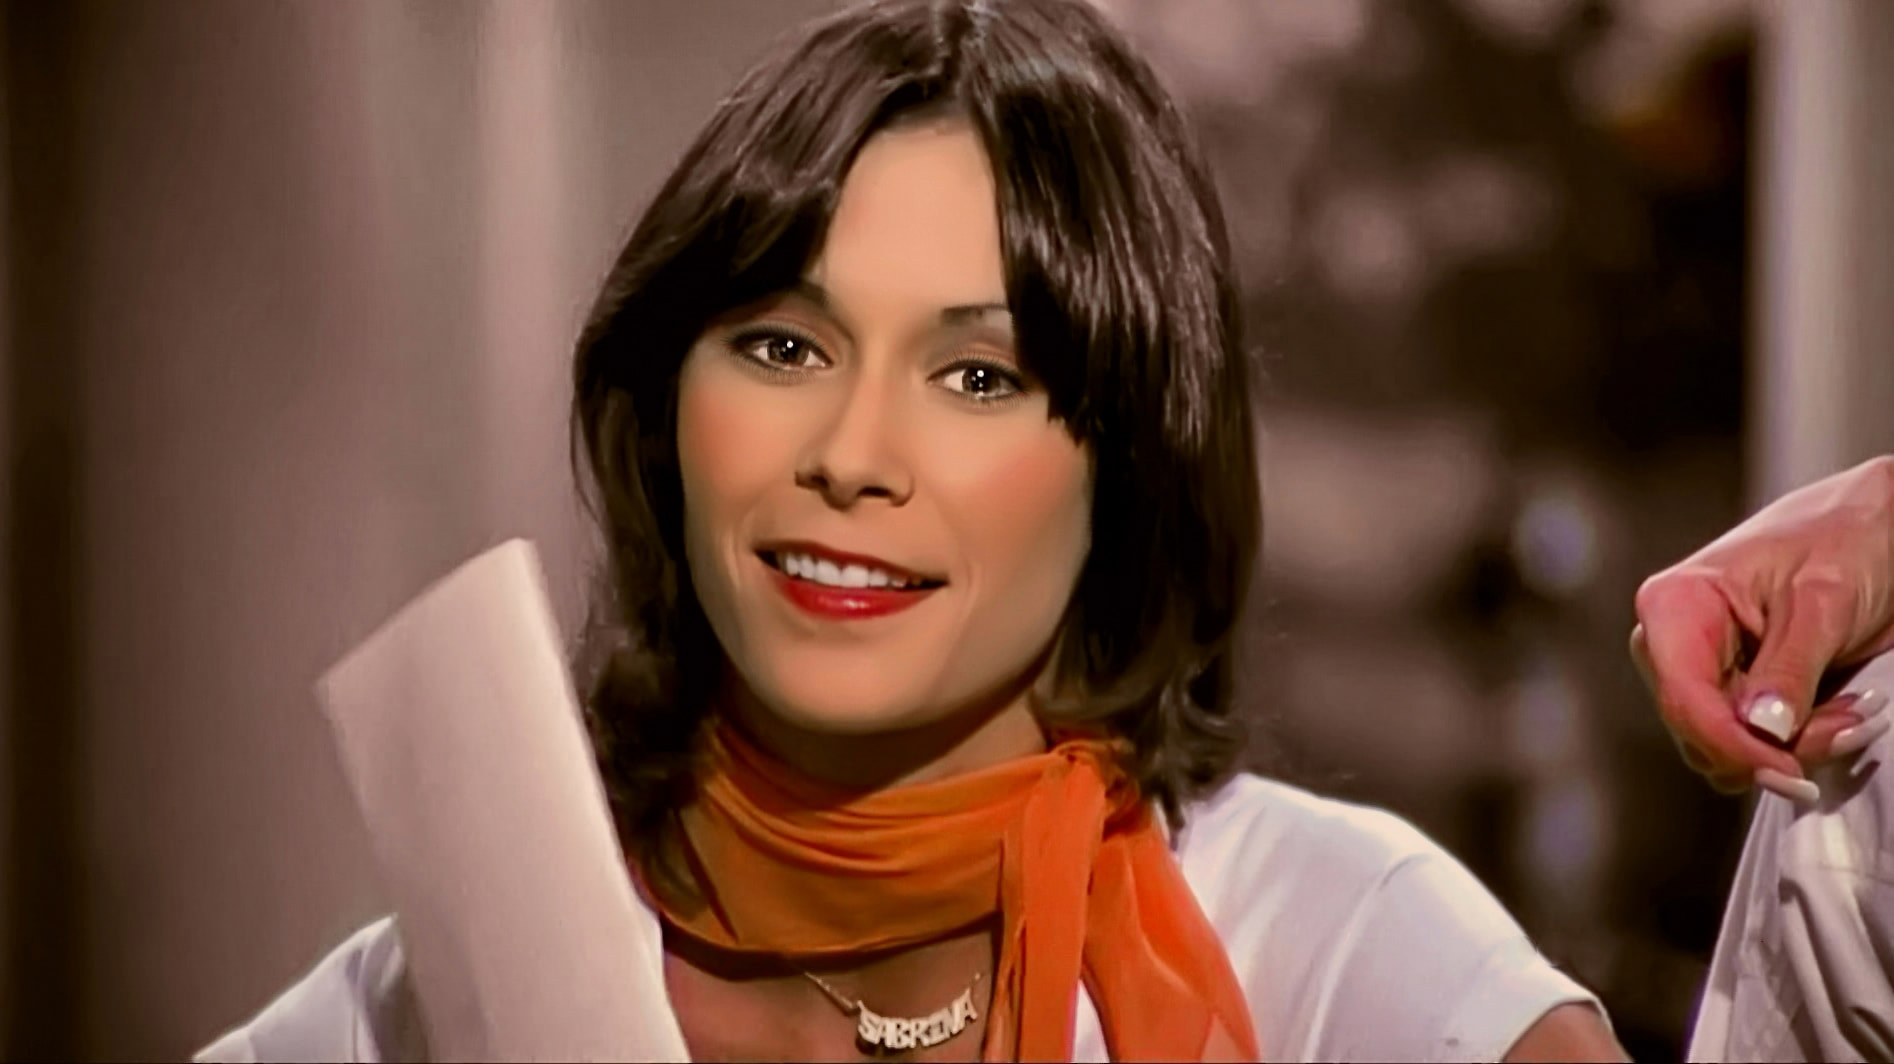 Kate Jackson Screensavers